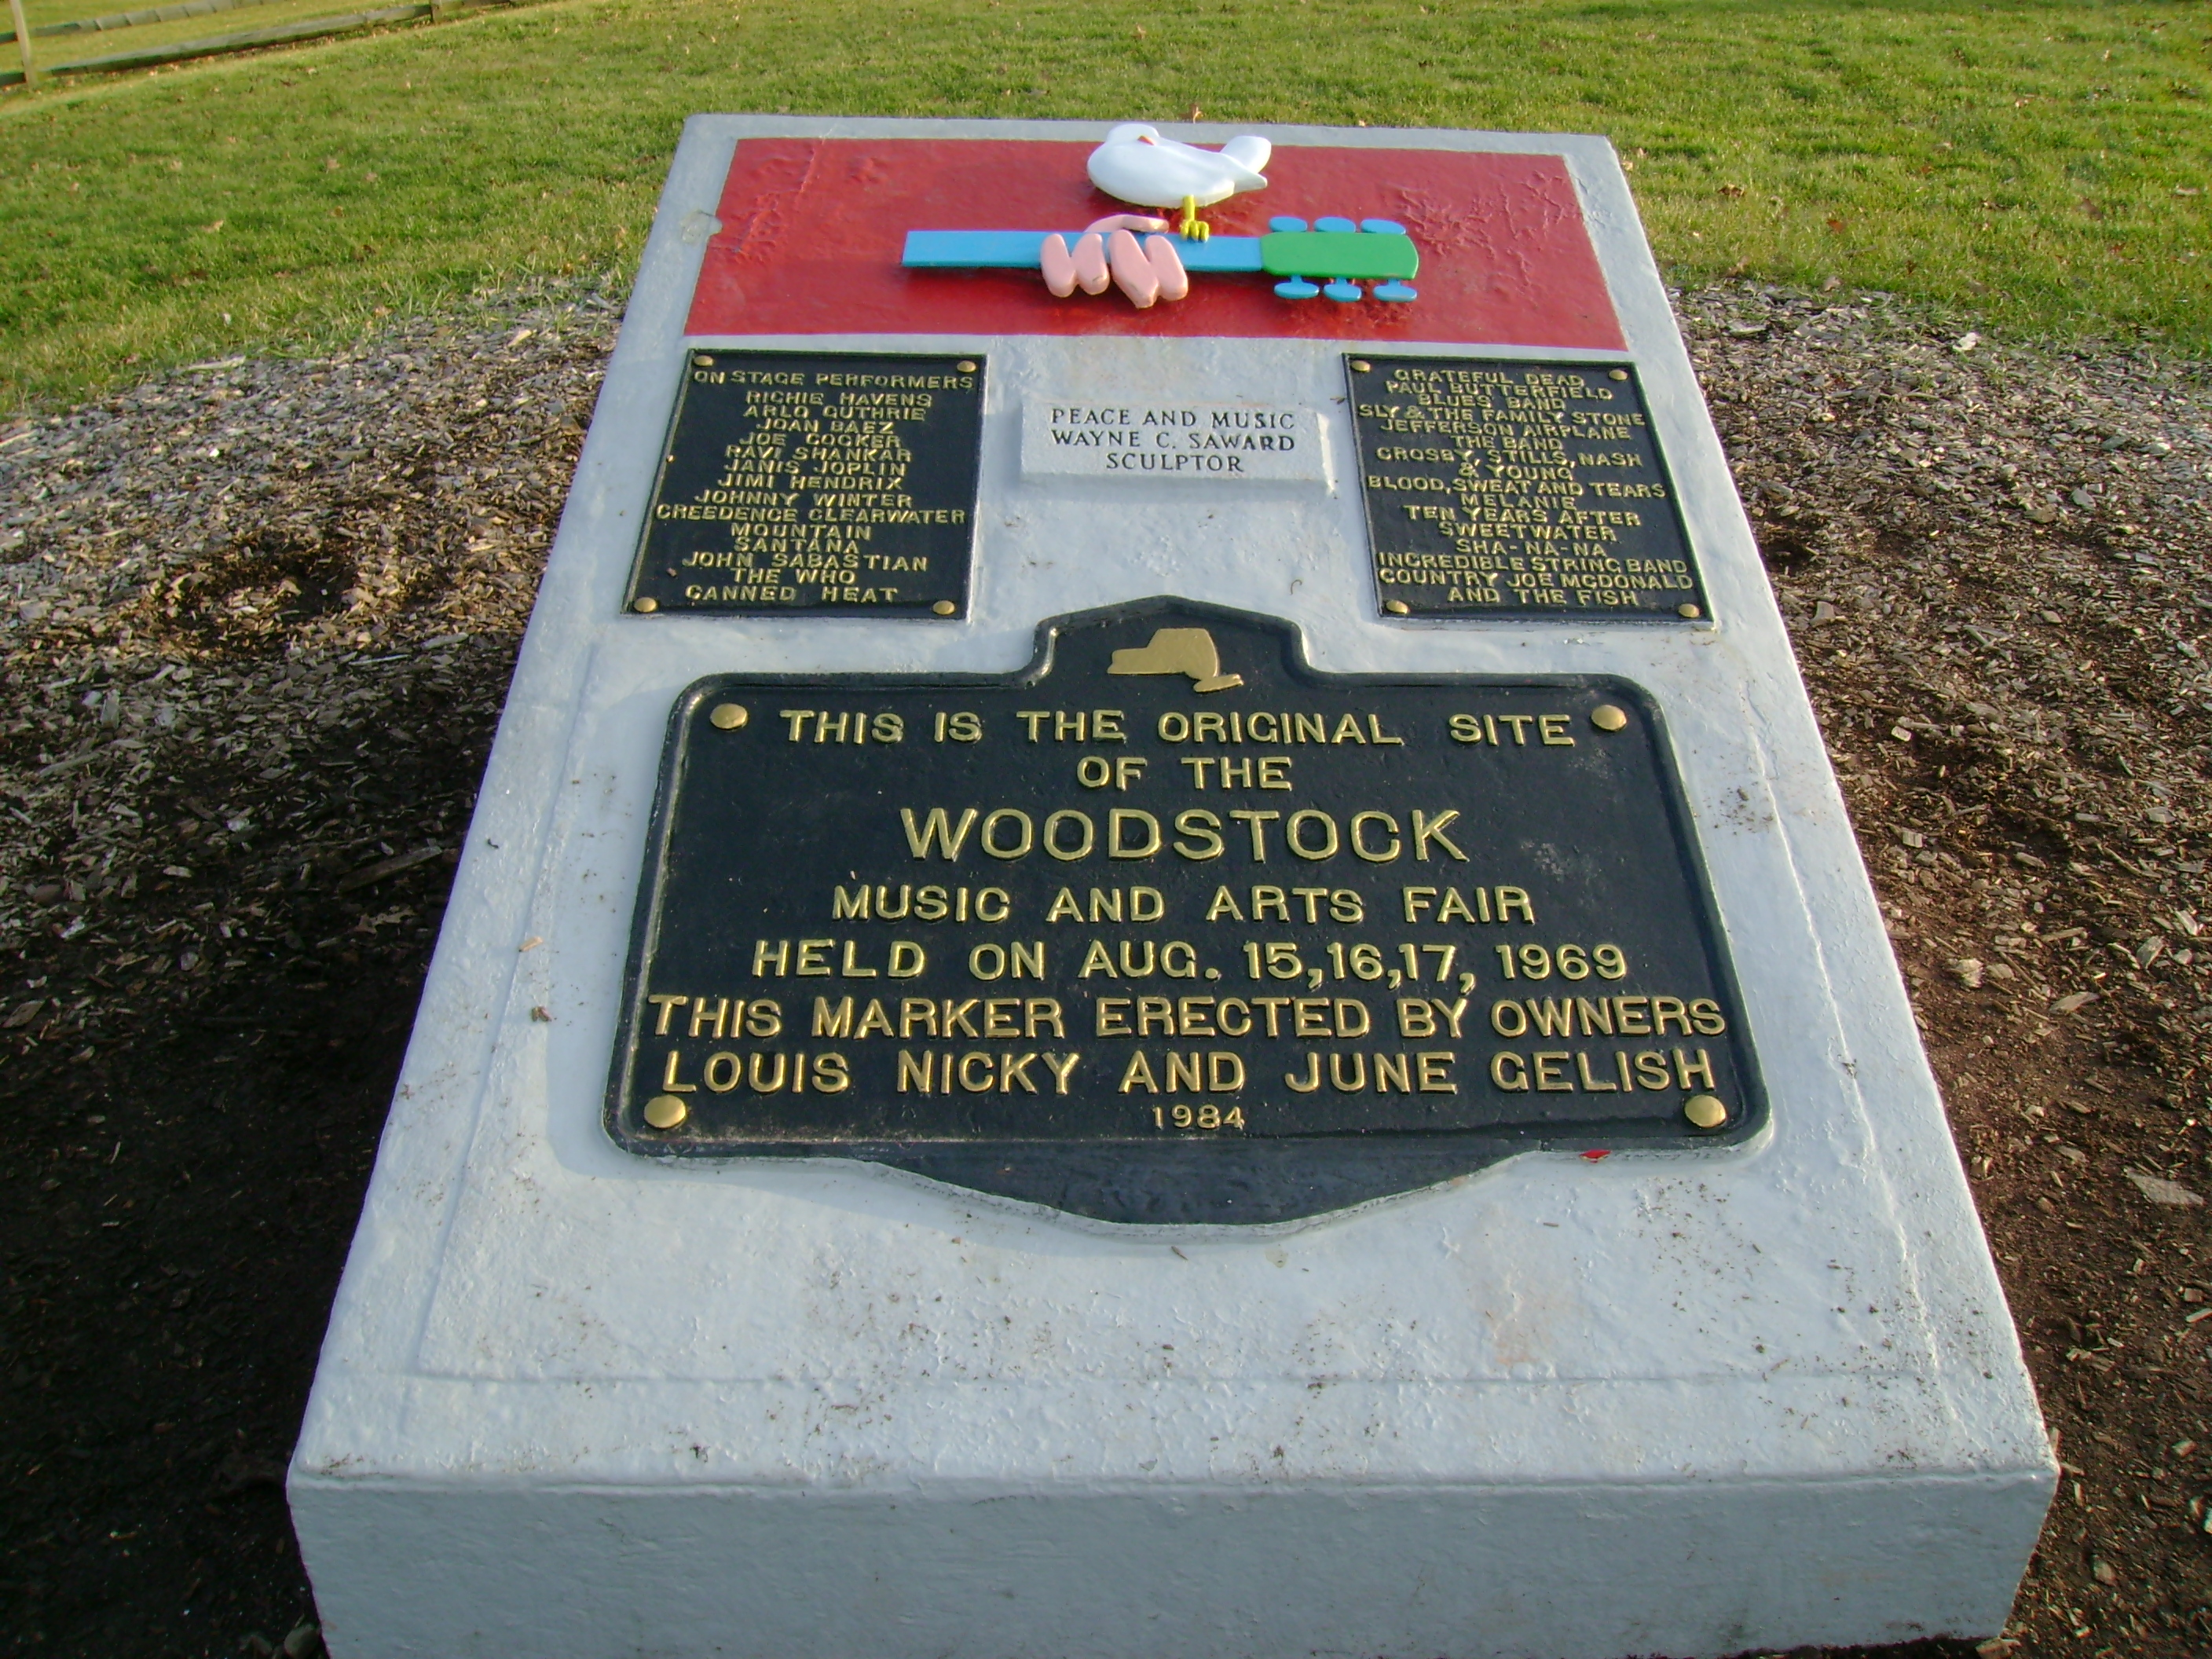 The Woodstock Monument